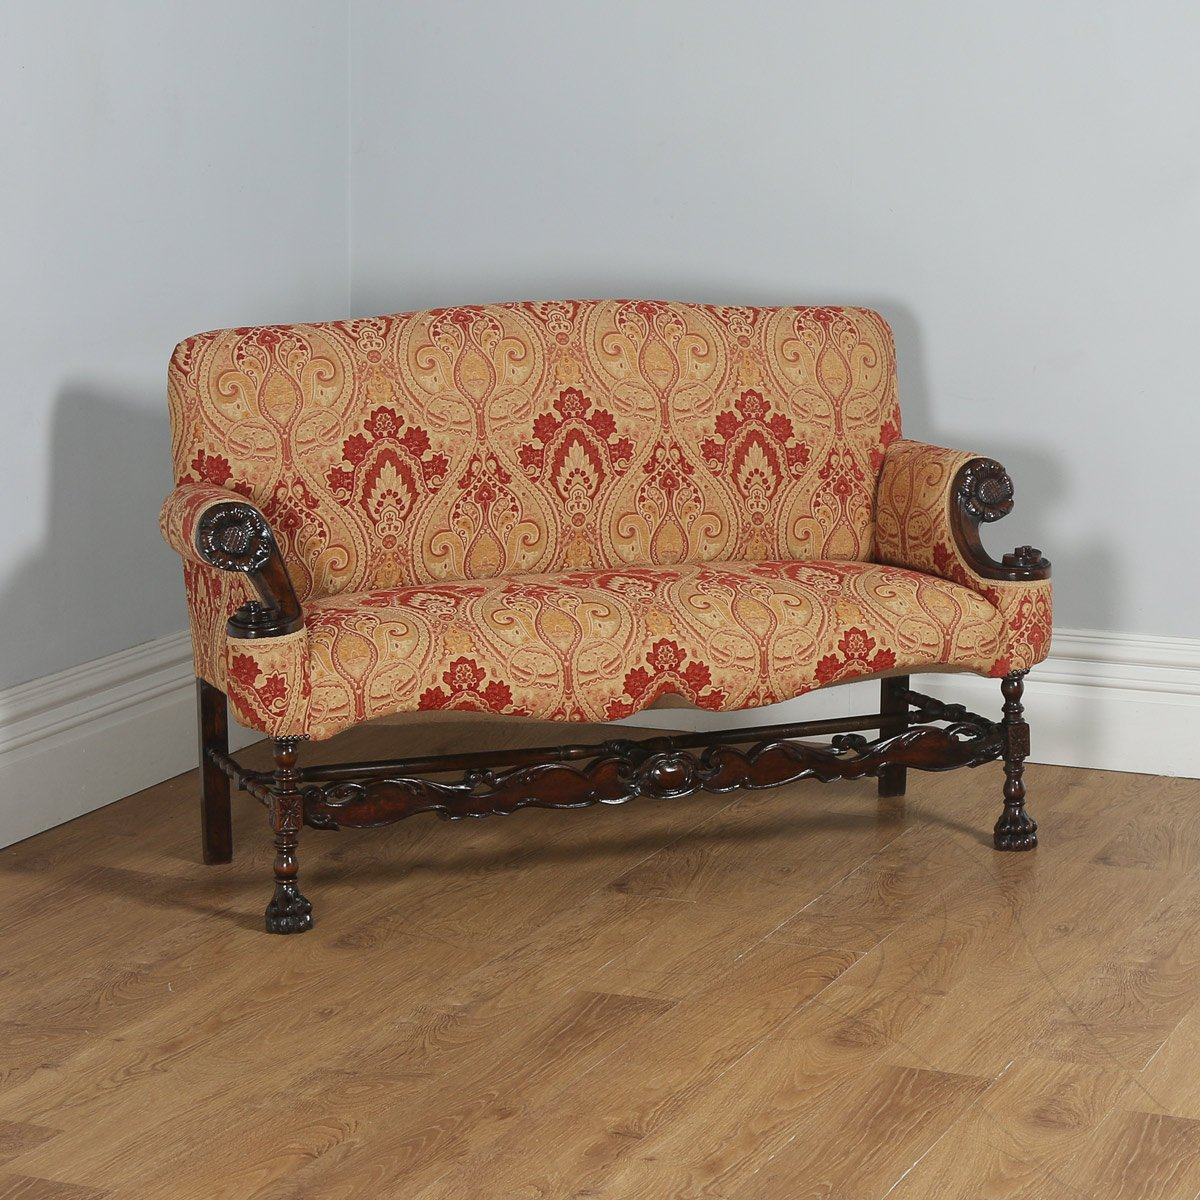 paisley furniture. Antique French Normandy Walnut Paisley Upholstered Couch (Circa 1900) - Yolagray.com Furniture O